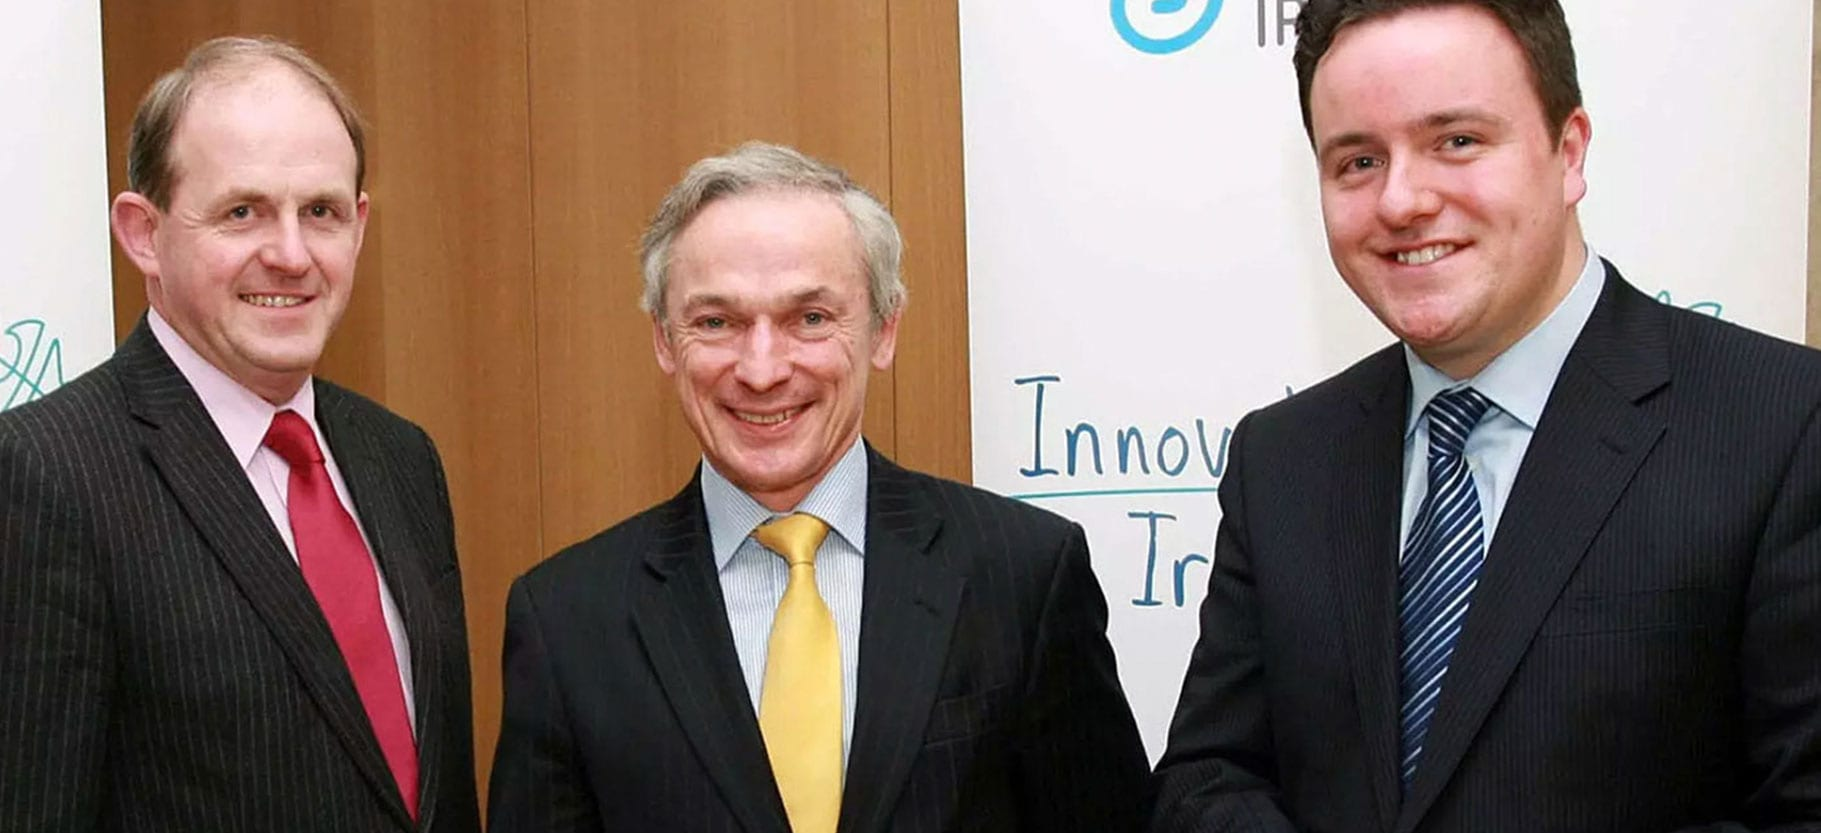 Blueface Announces €1m R&D Investment and 12 New Jobs  Investment Part-Funded by Enterprise Ireland's R&D Fund